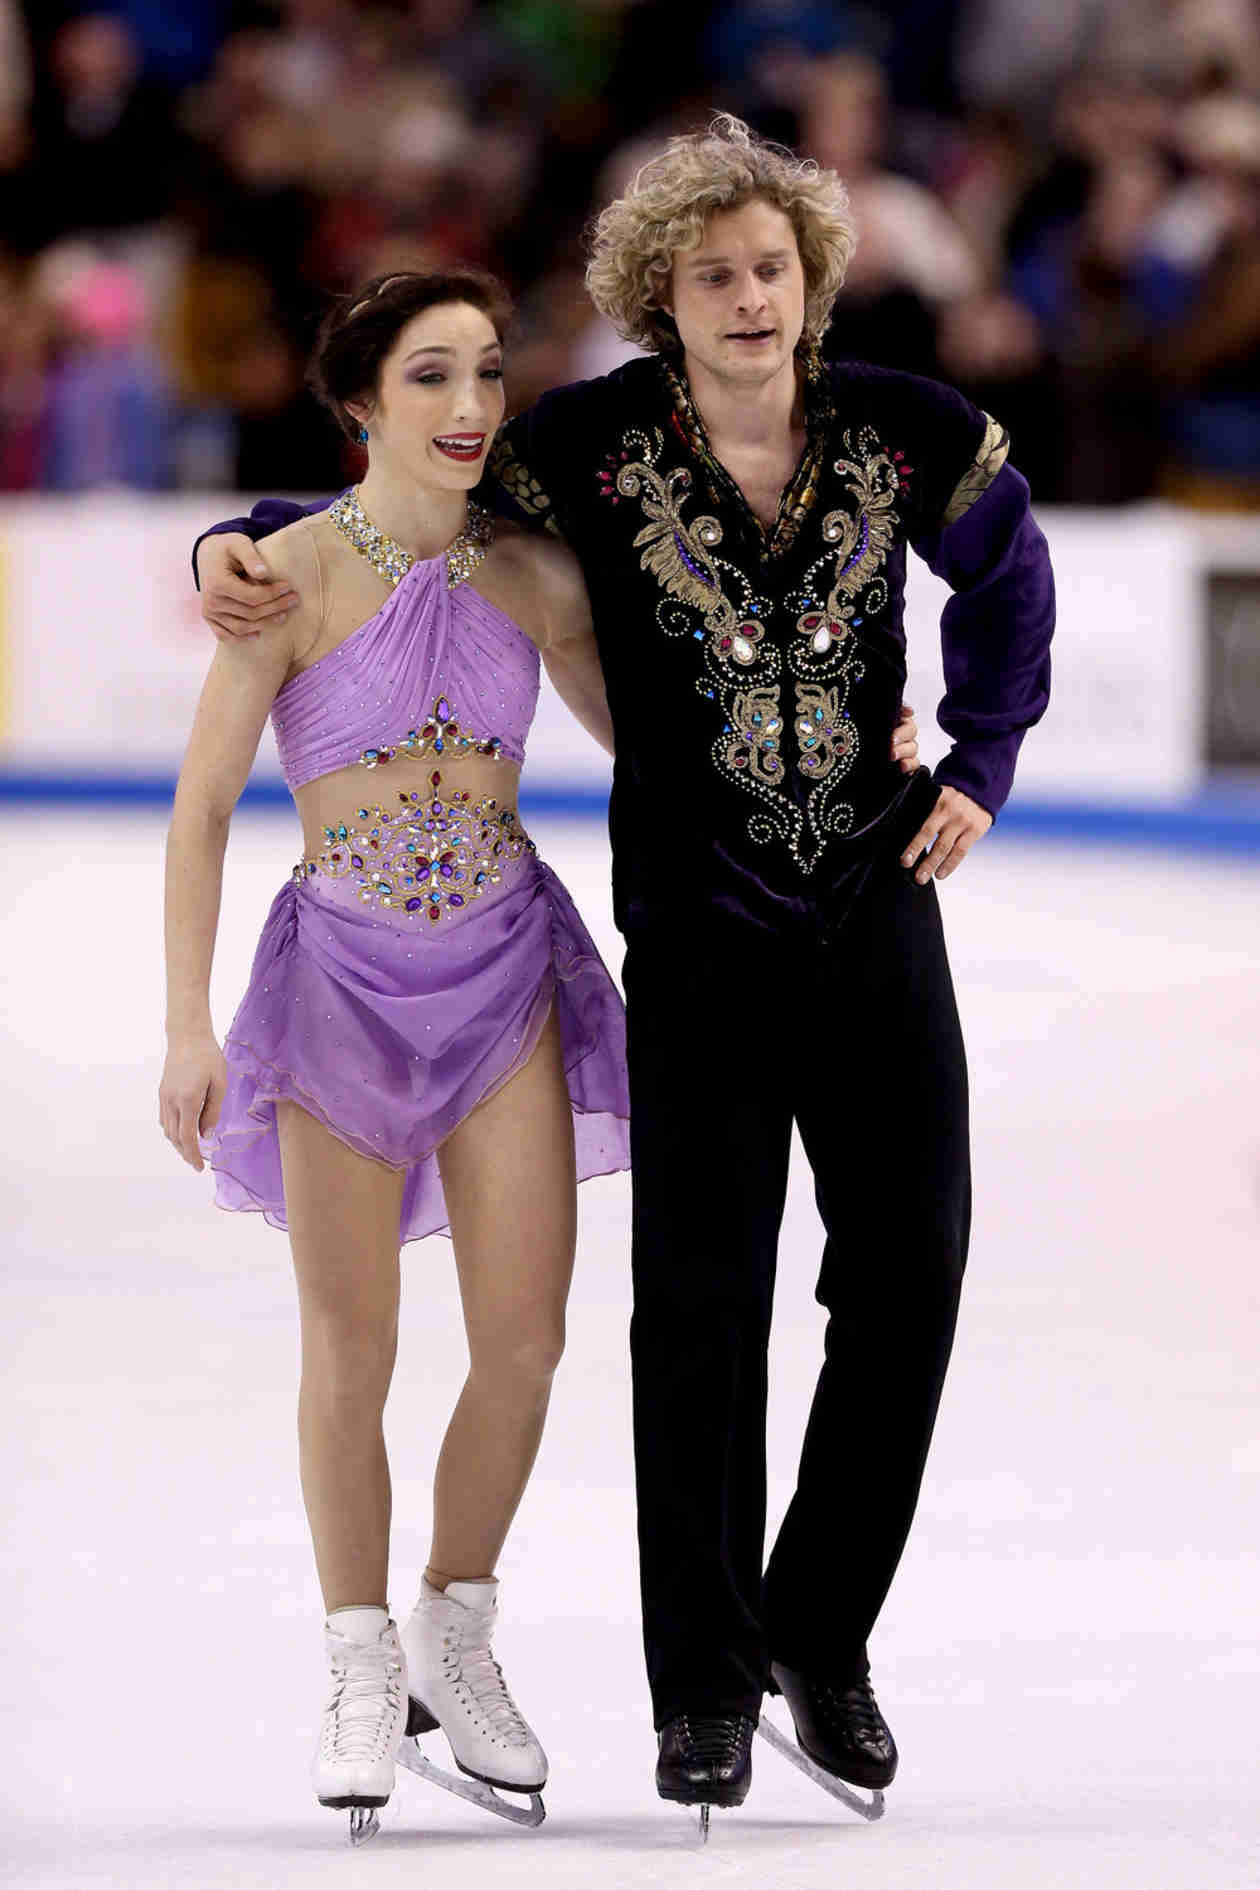 Olympic Skaters Meryl Davis and Charlie White: How Long Have They Been Partners?